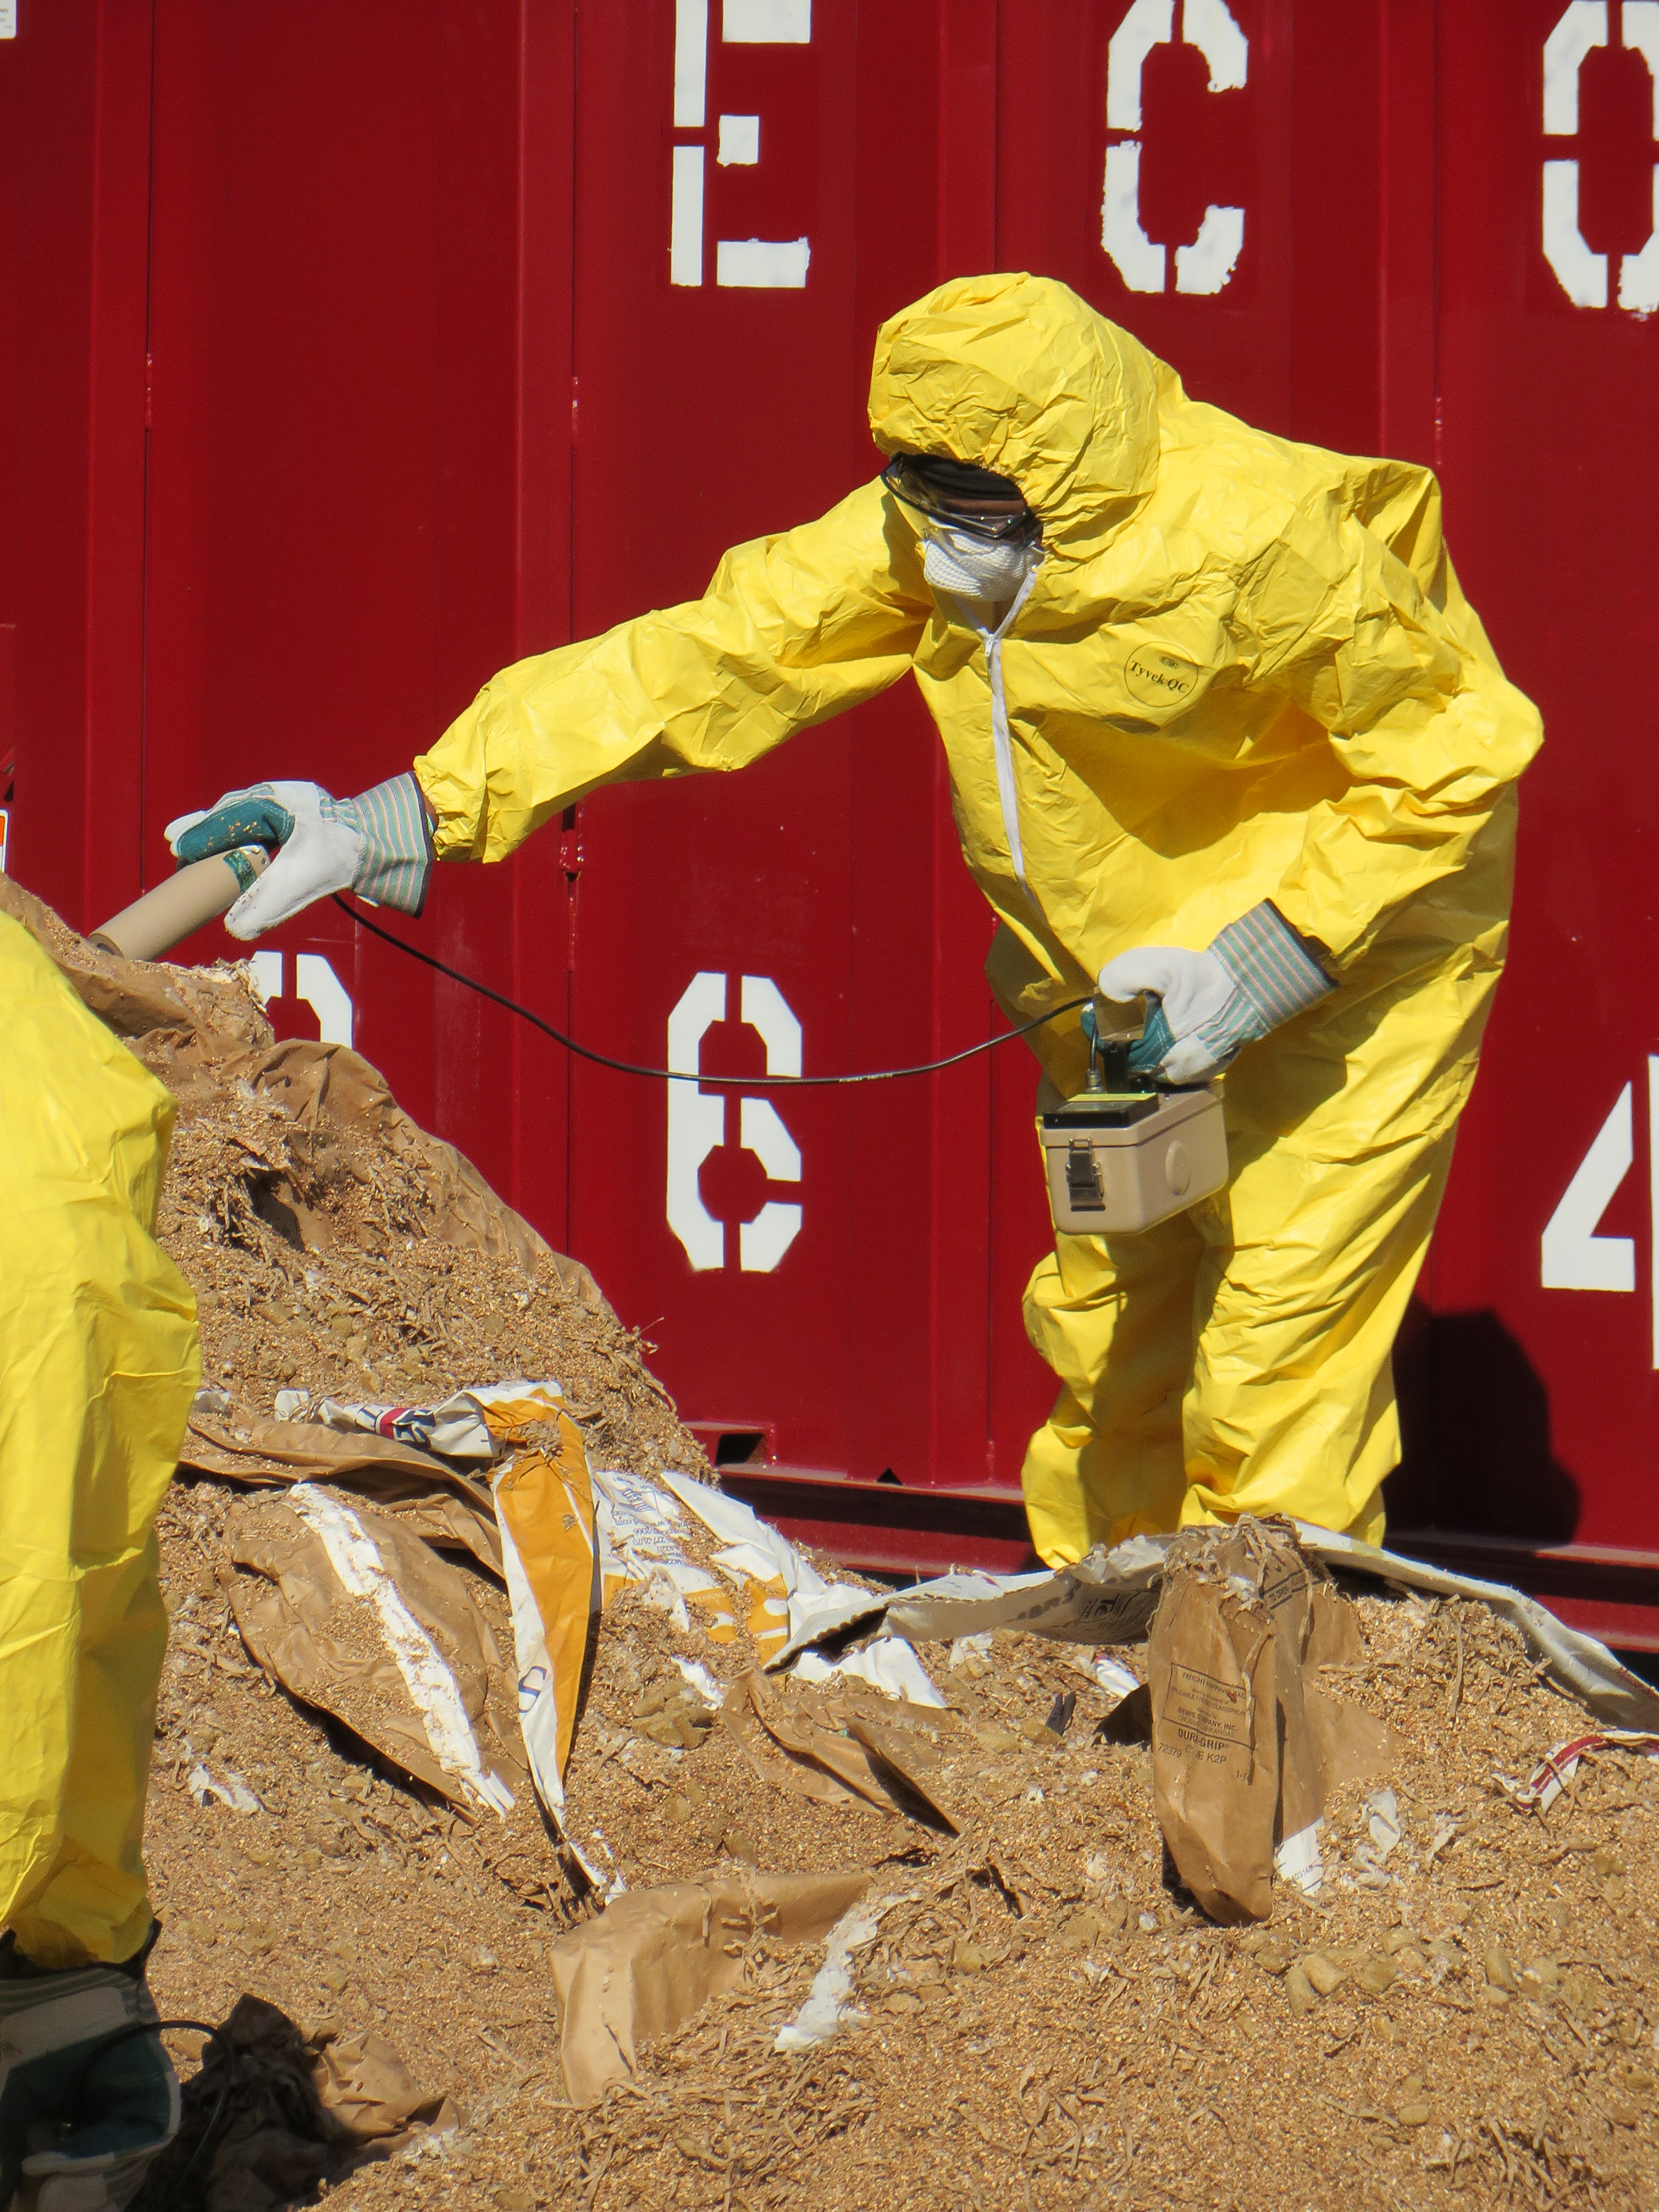 Person in Hazmat uniform using a machine